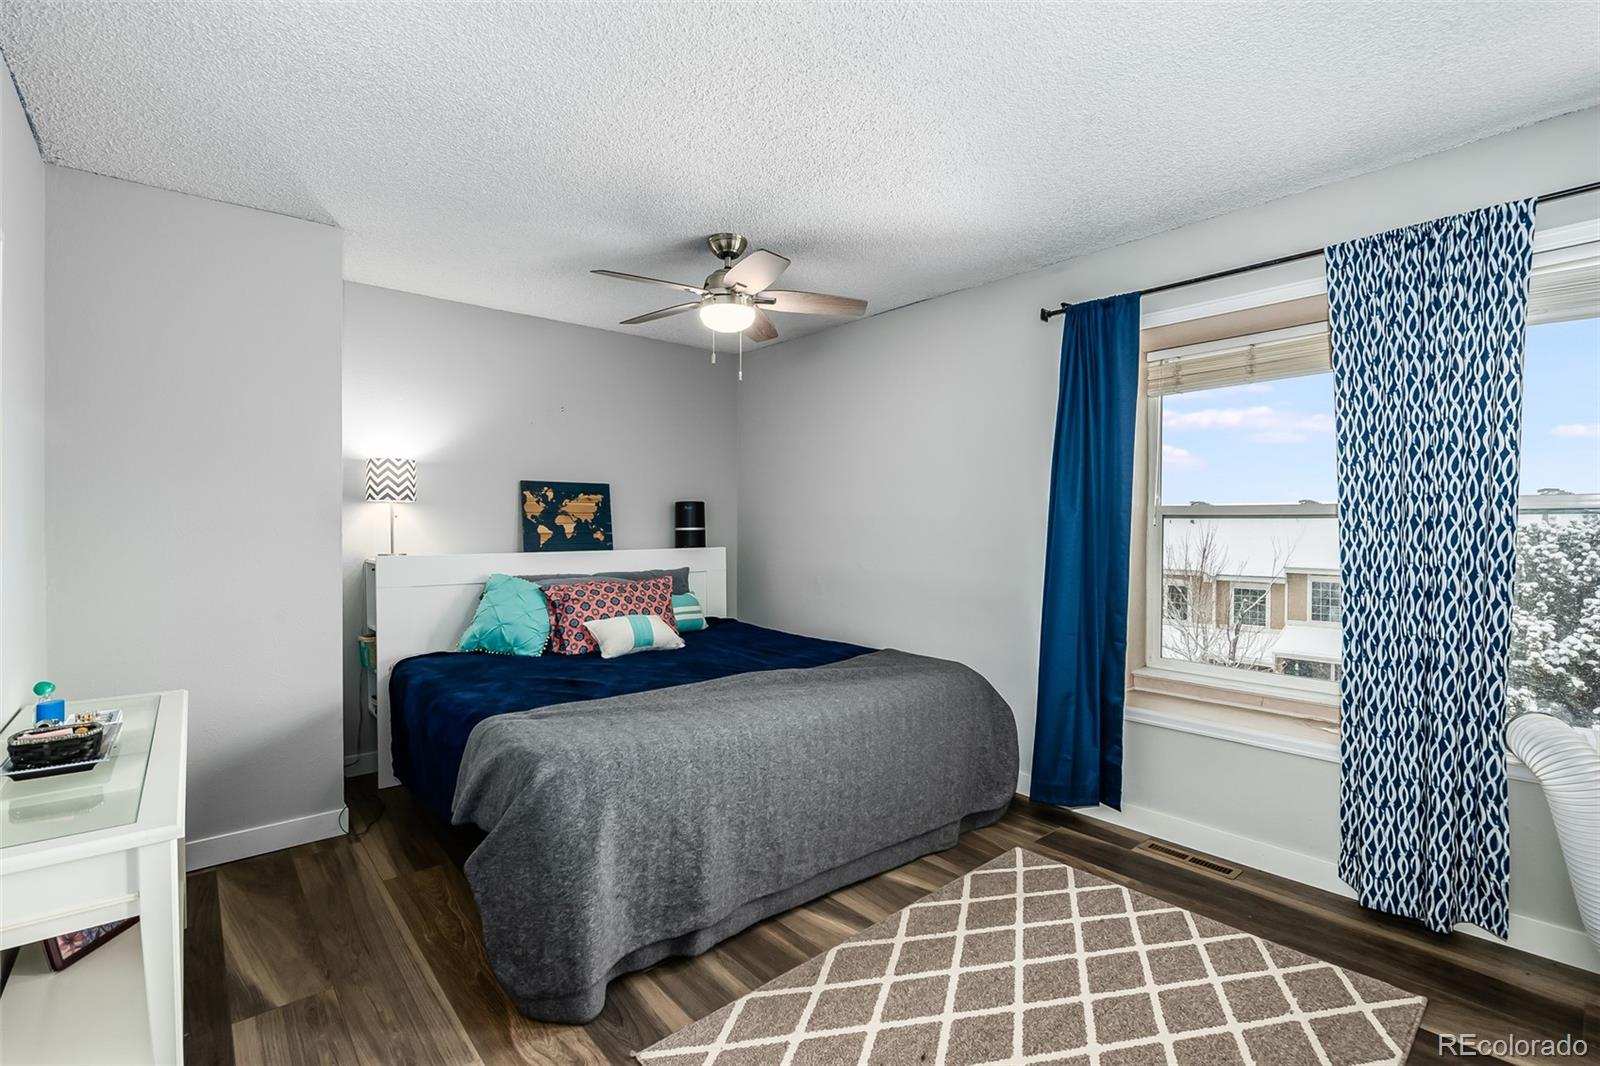 MLS# 2133621 - 14 - 2220 E 103rd Place, Thornton, CO 80229